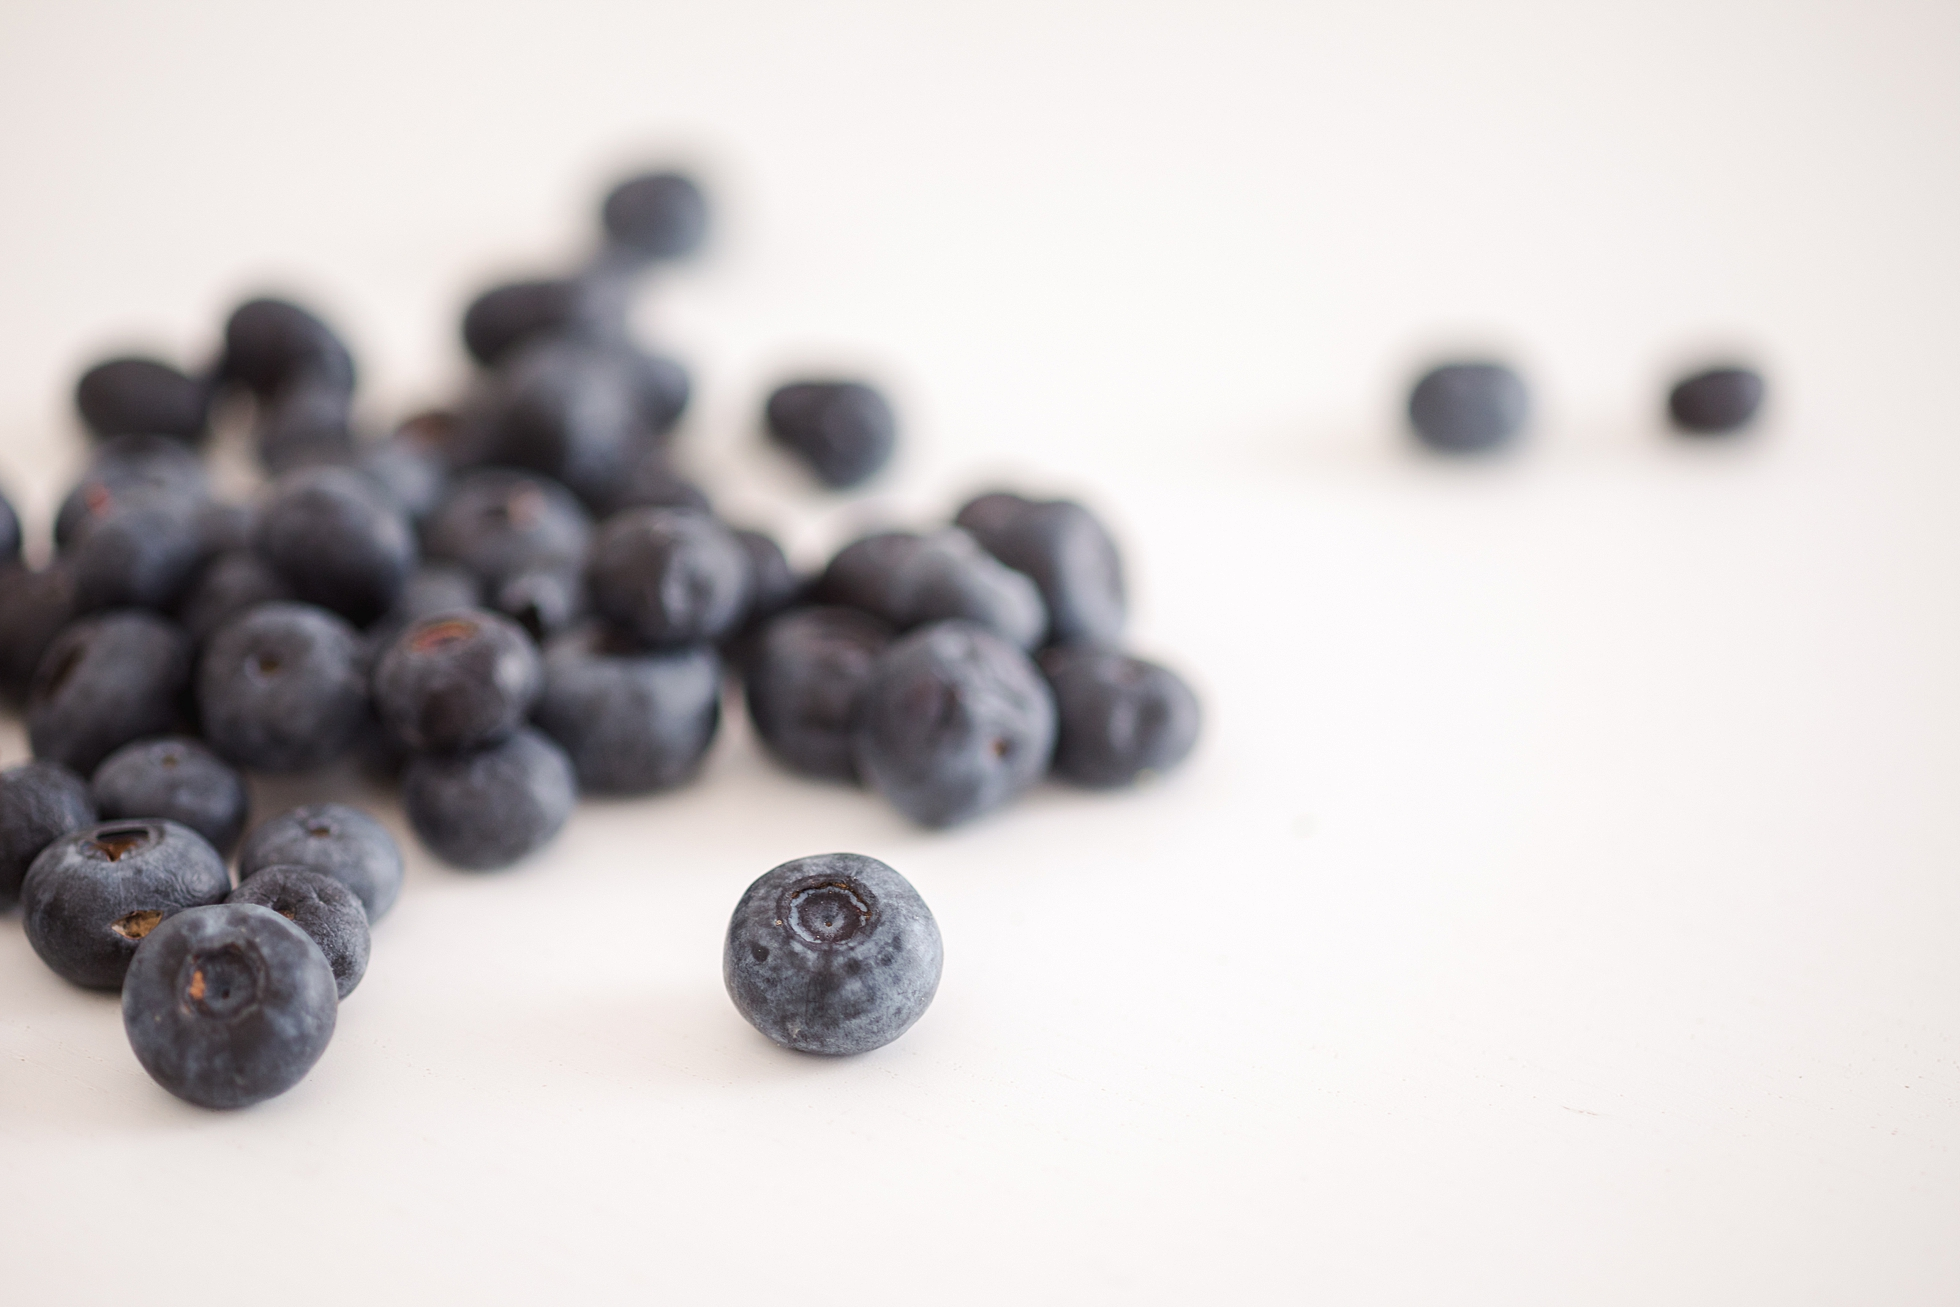 Healthy blueberries scattered